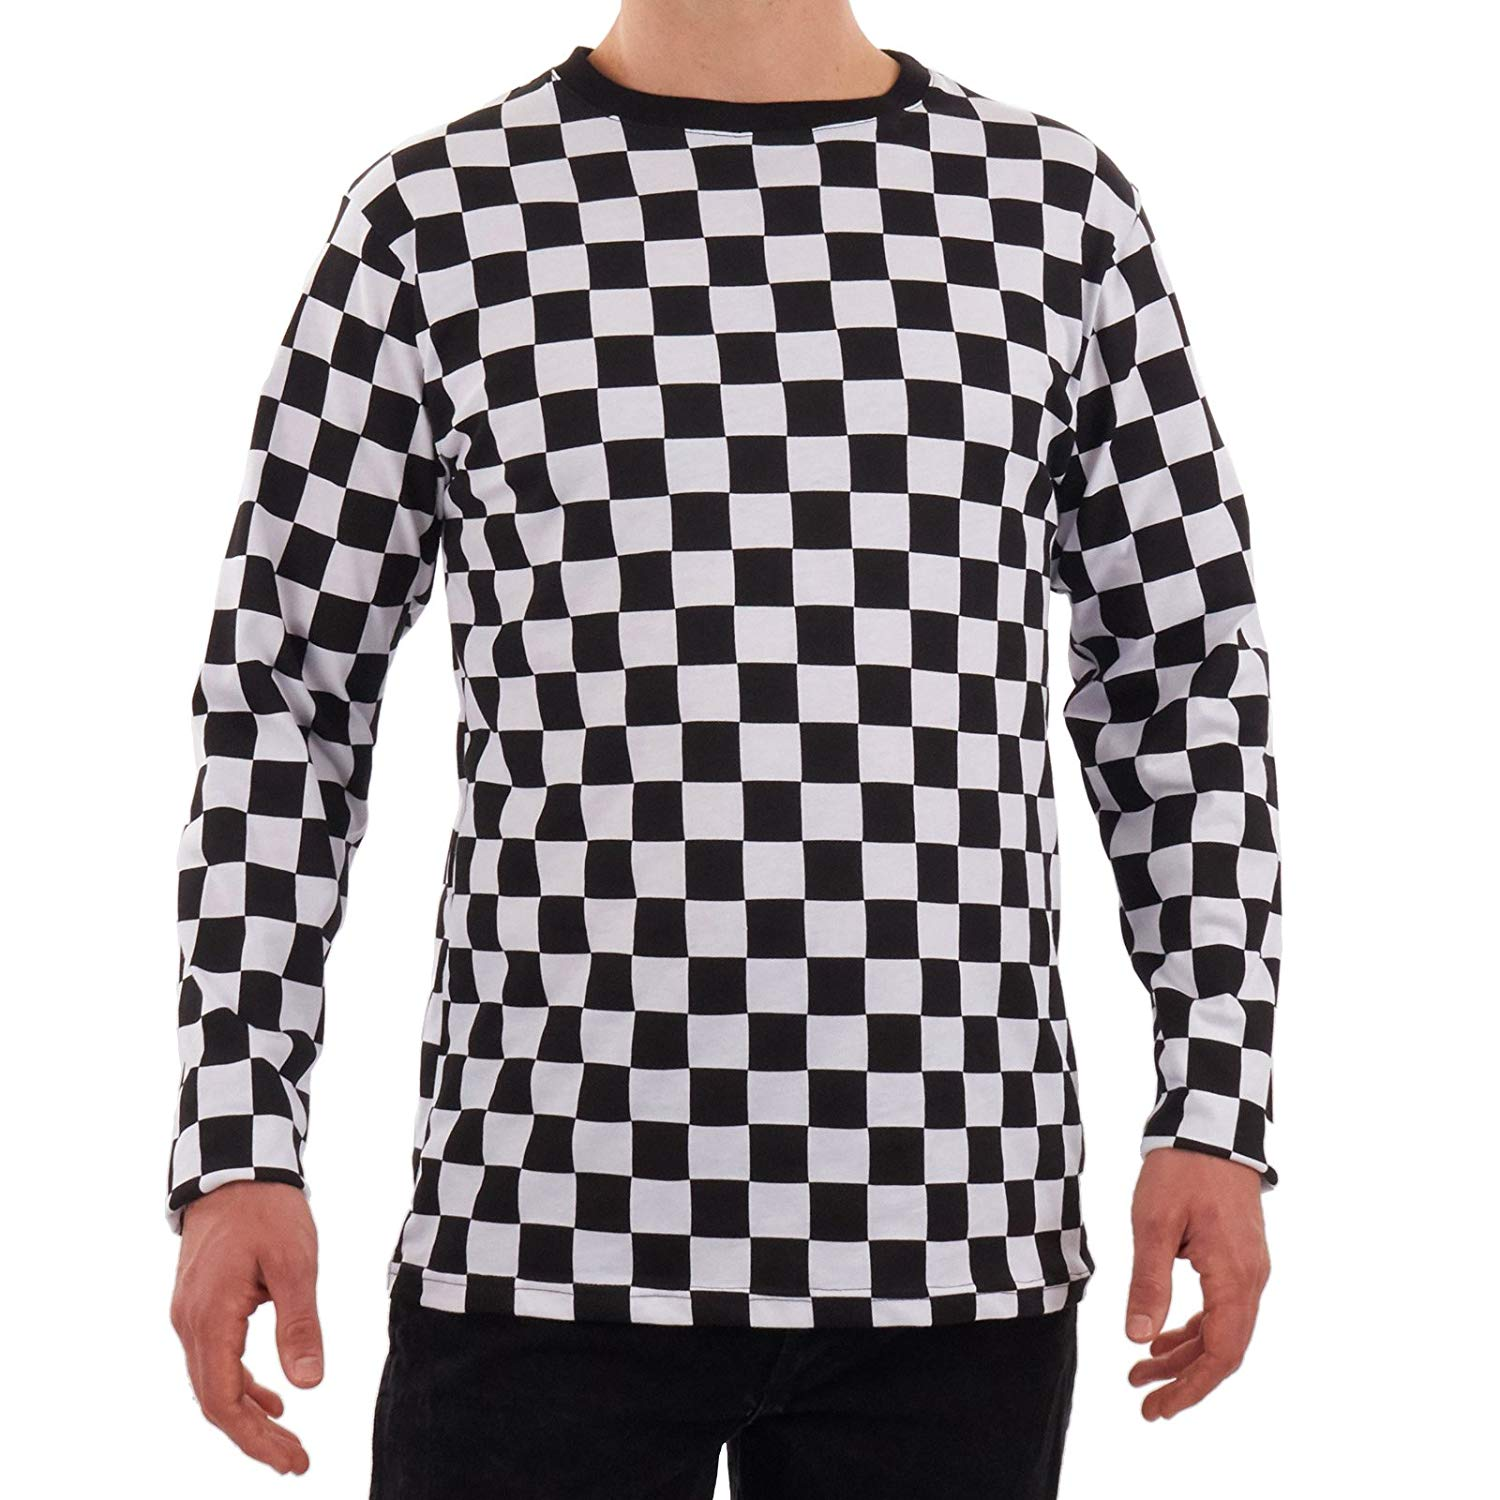 137560917263 Get Quotations · Men's RAD 80's Checkered Long Sleeve Shirt Black and White